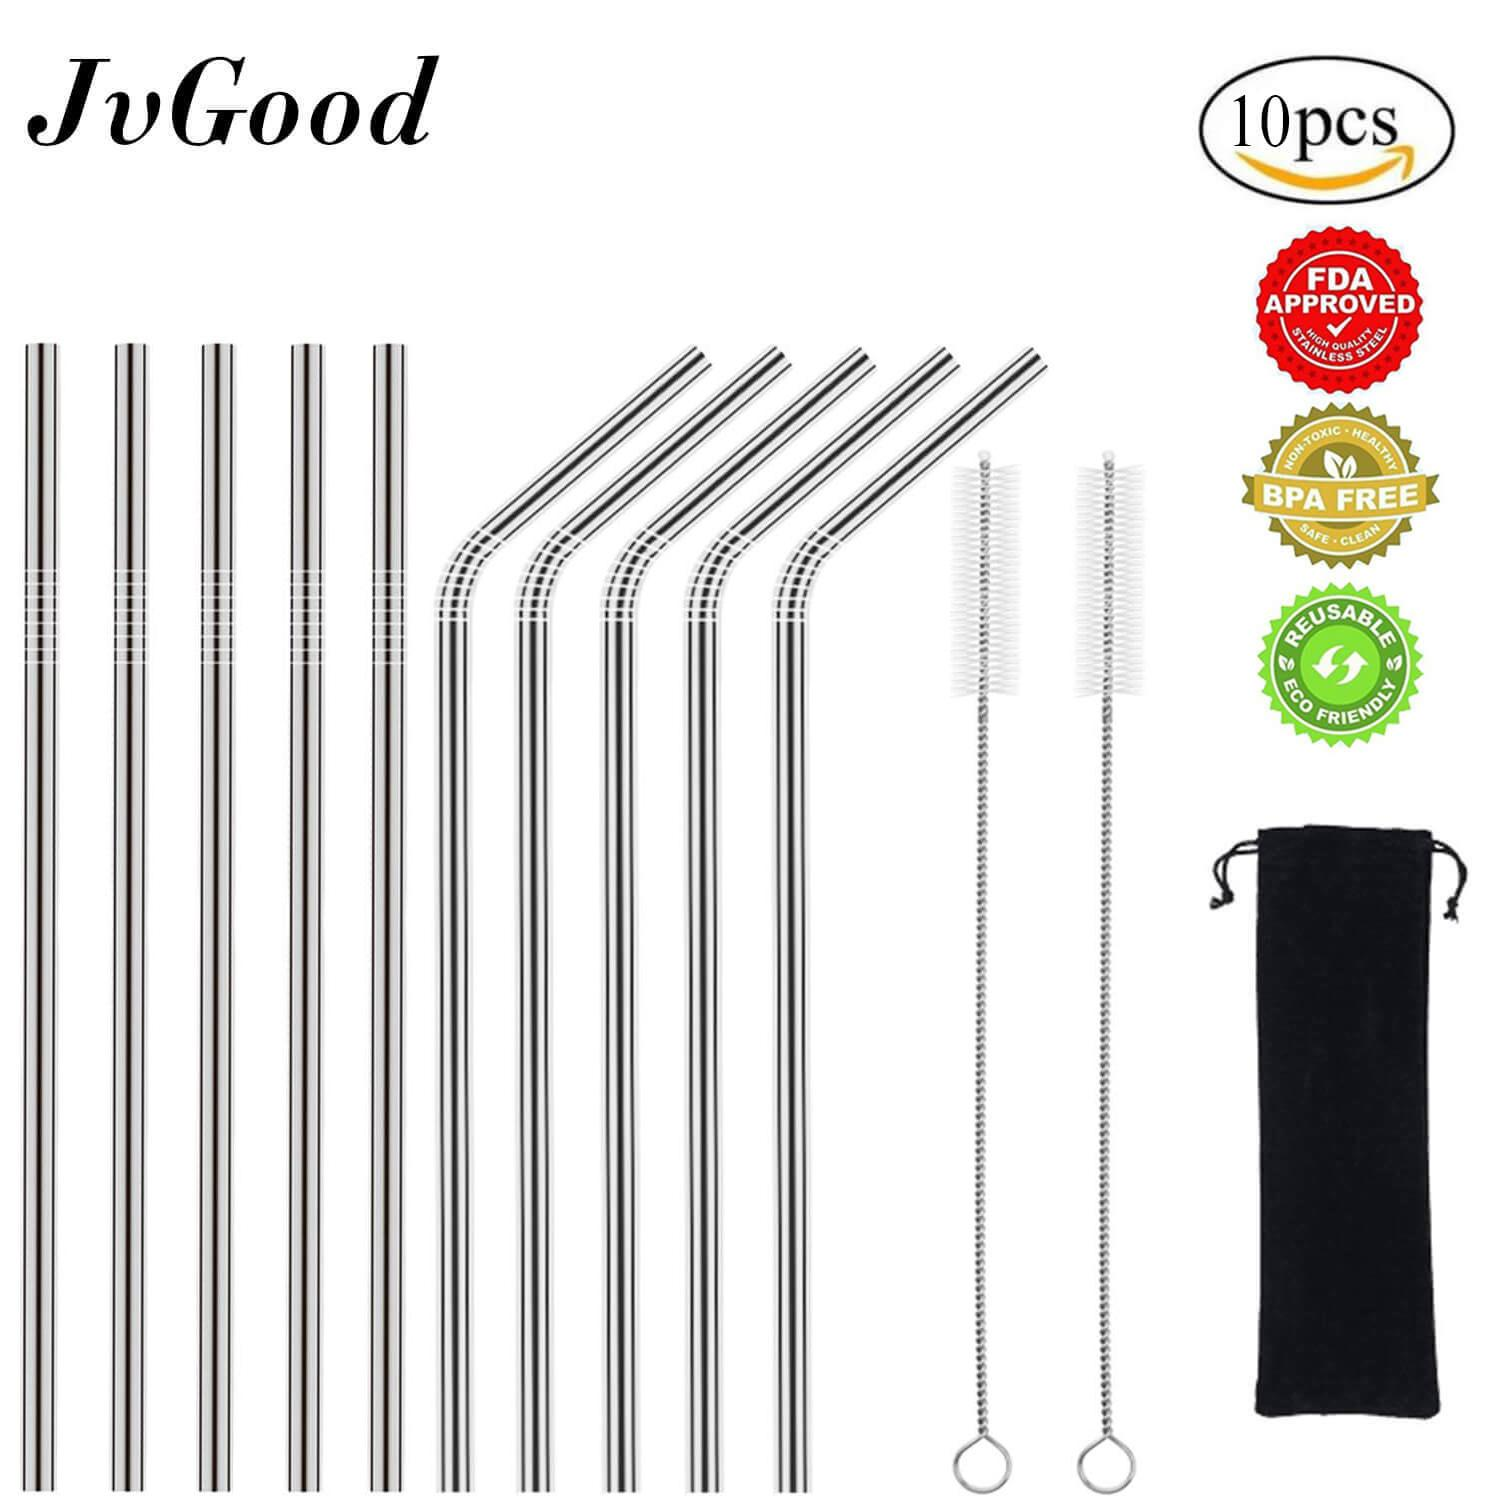 Kitchen, Dining & Bar Provided 10pcs Drinking Straws Reusable Smoothie Straws & 3 Cleaning Brushes